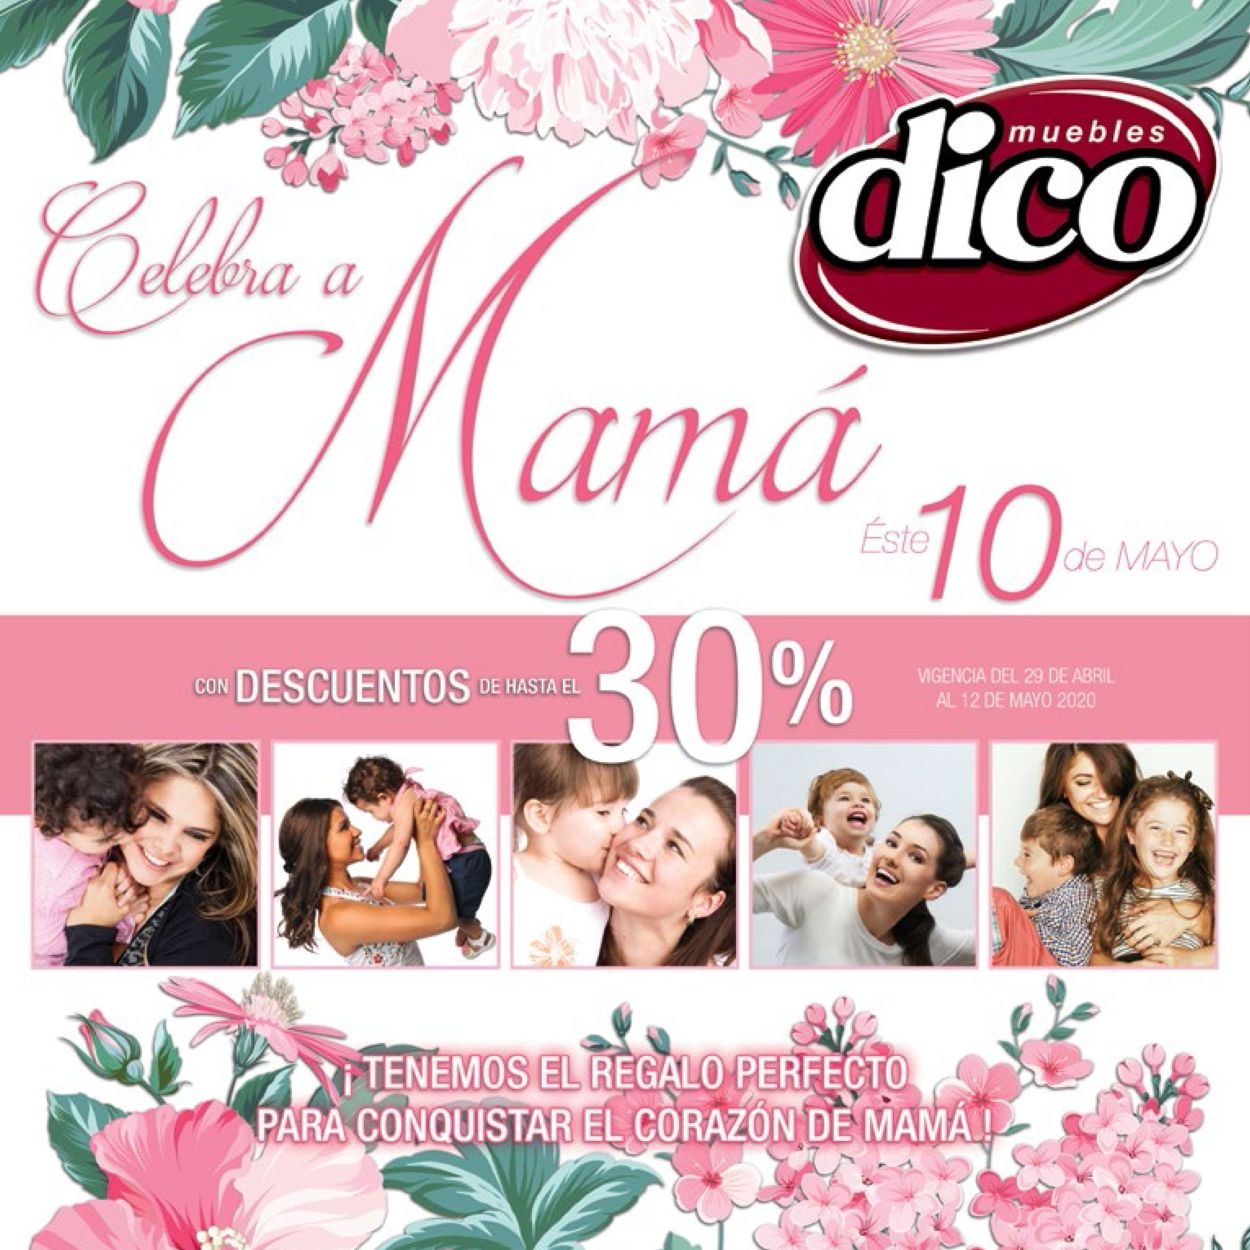 Muebles Dico Folleto - 29.04-12.05.2020